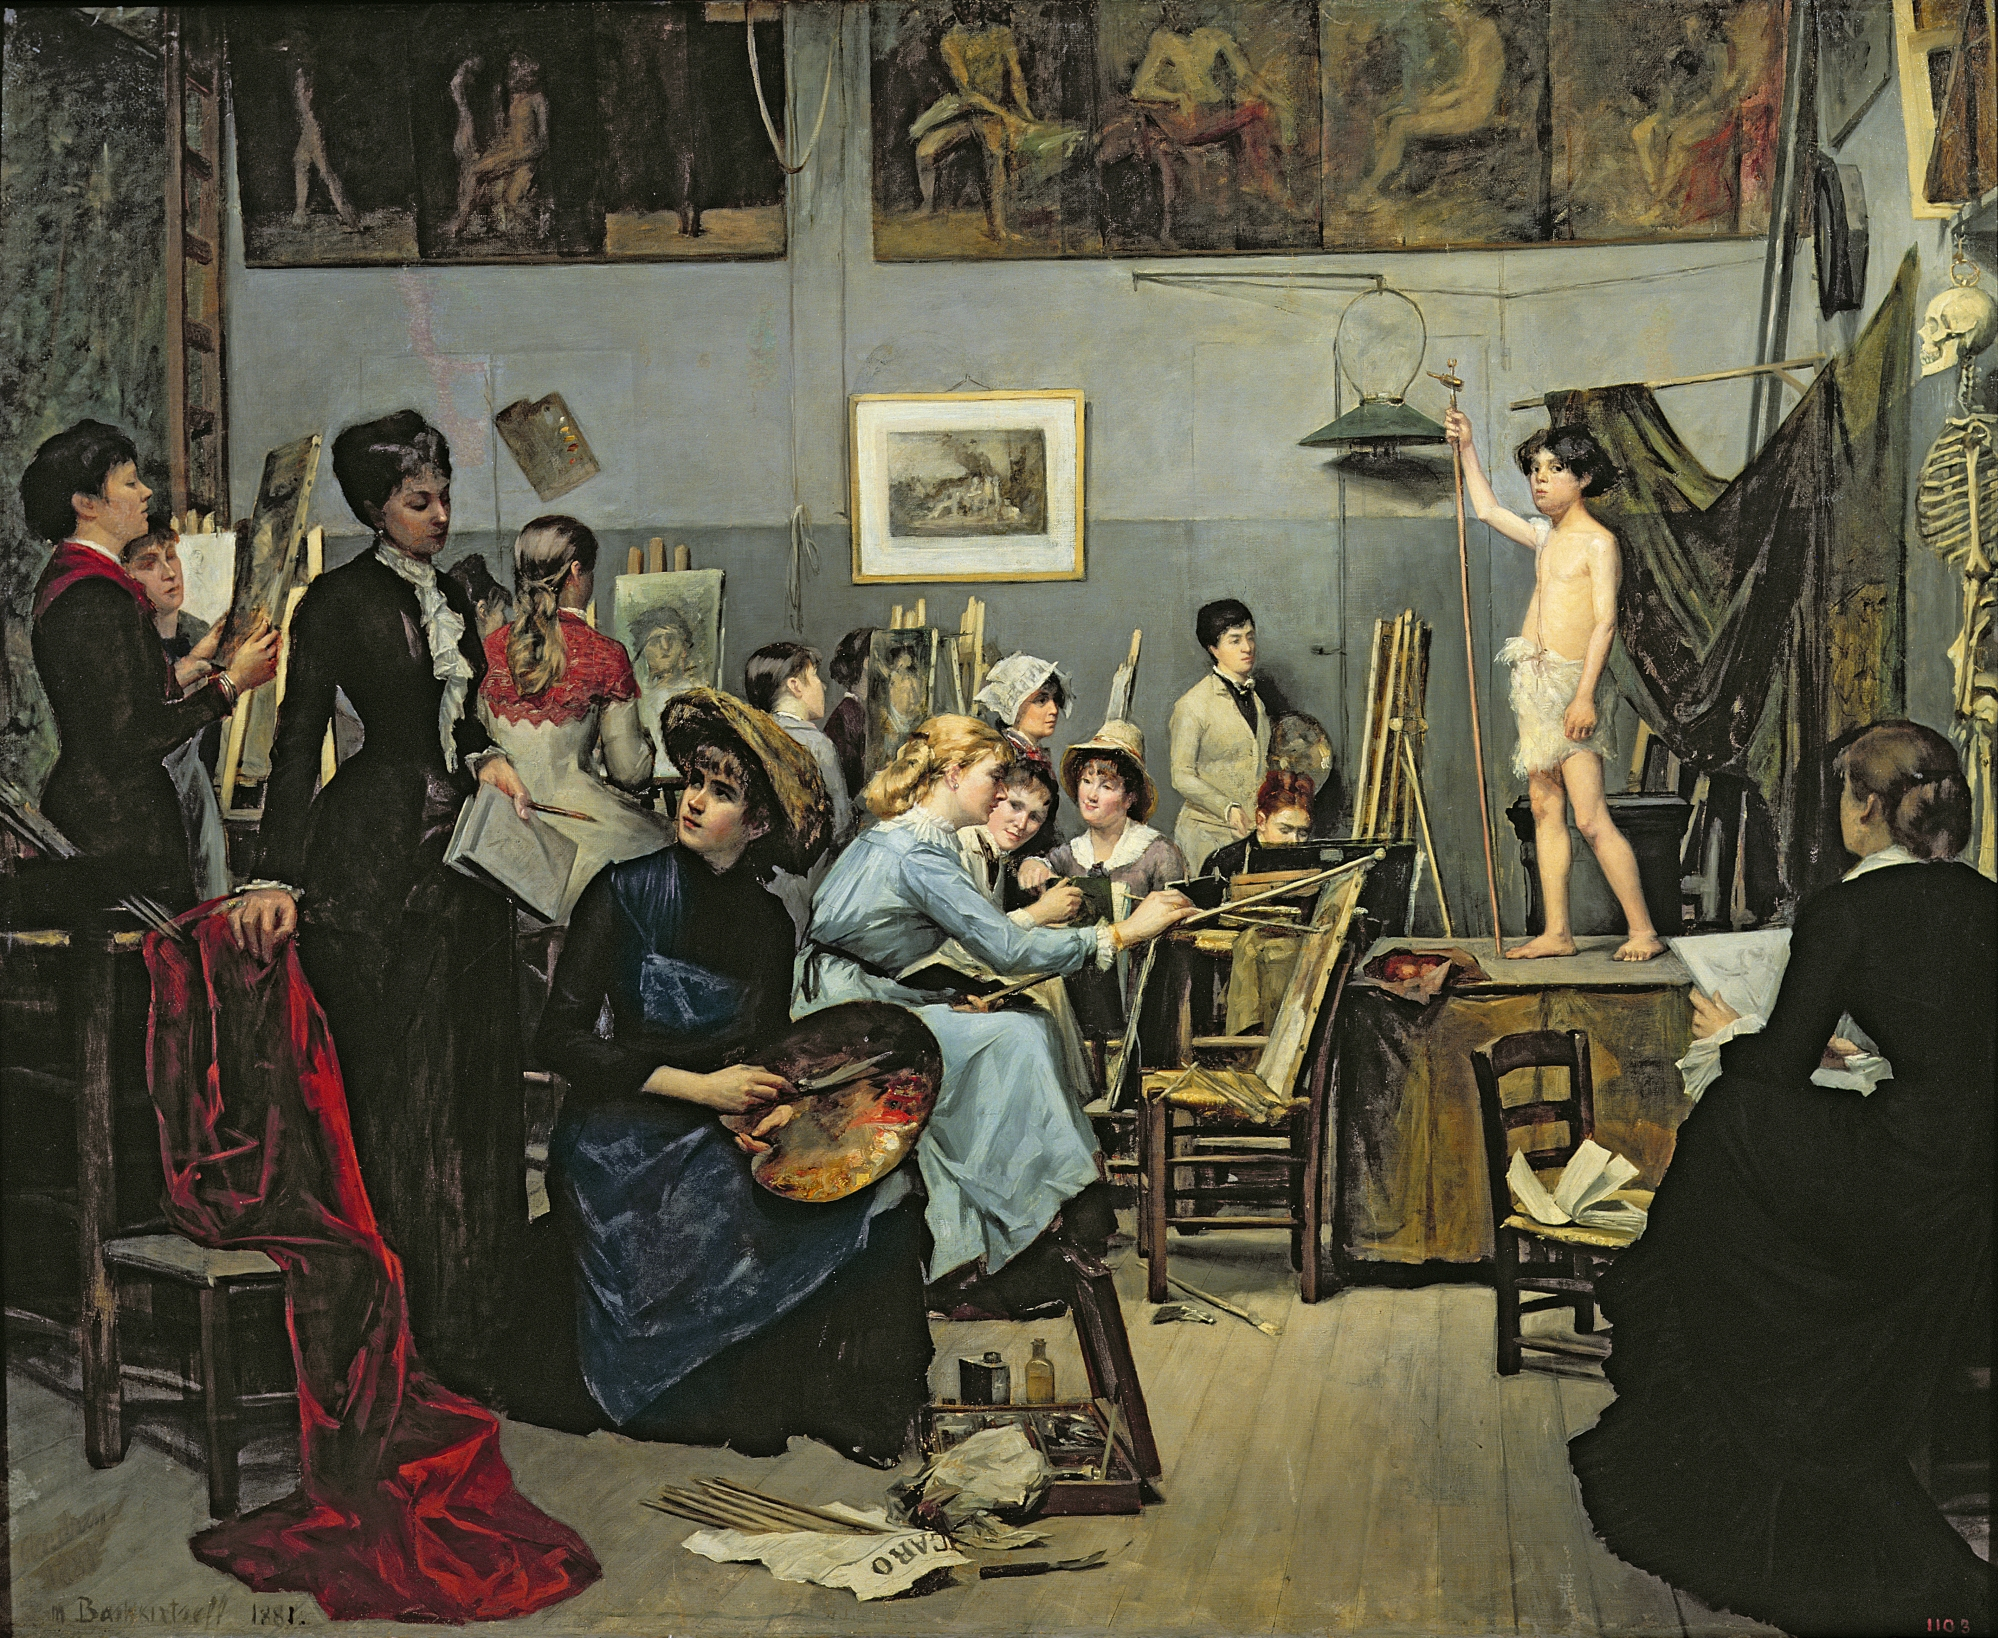 In the Studio by Marie Bashkirtseff, 1881   PC: arthistoryproject.com